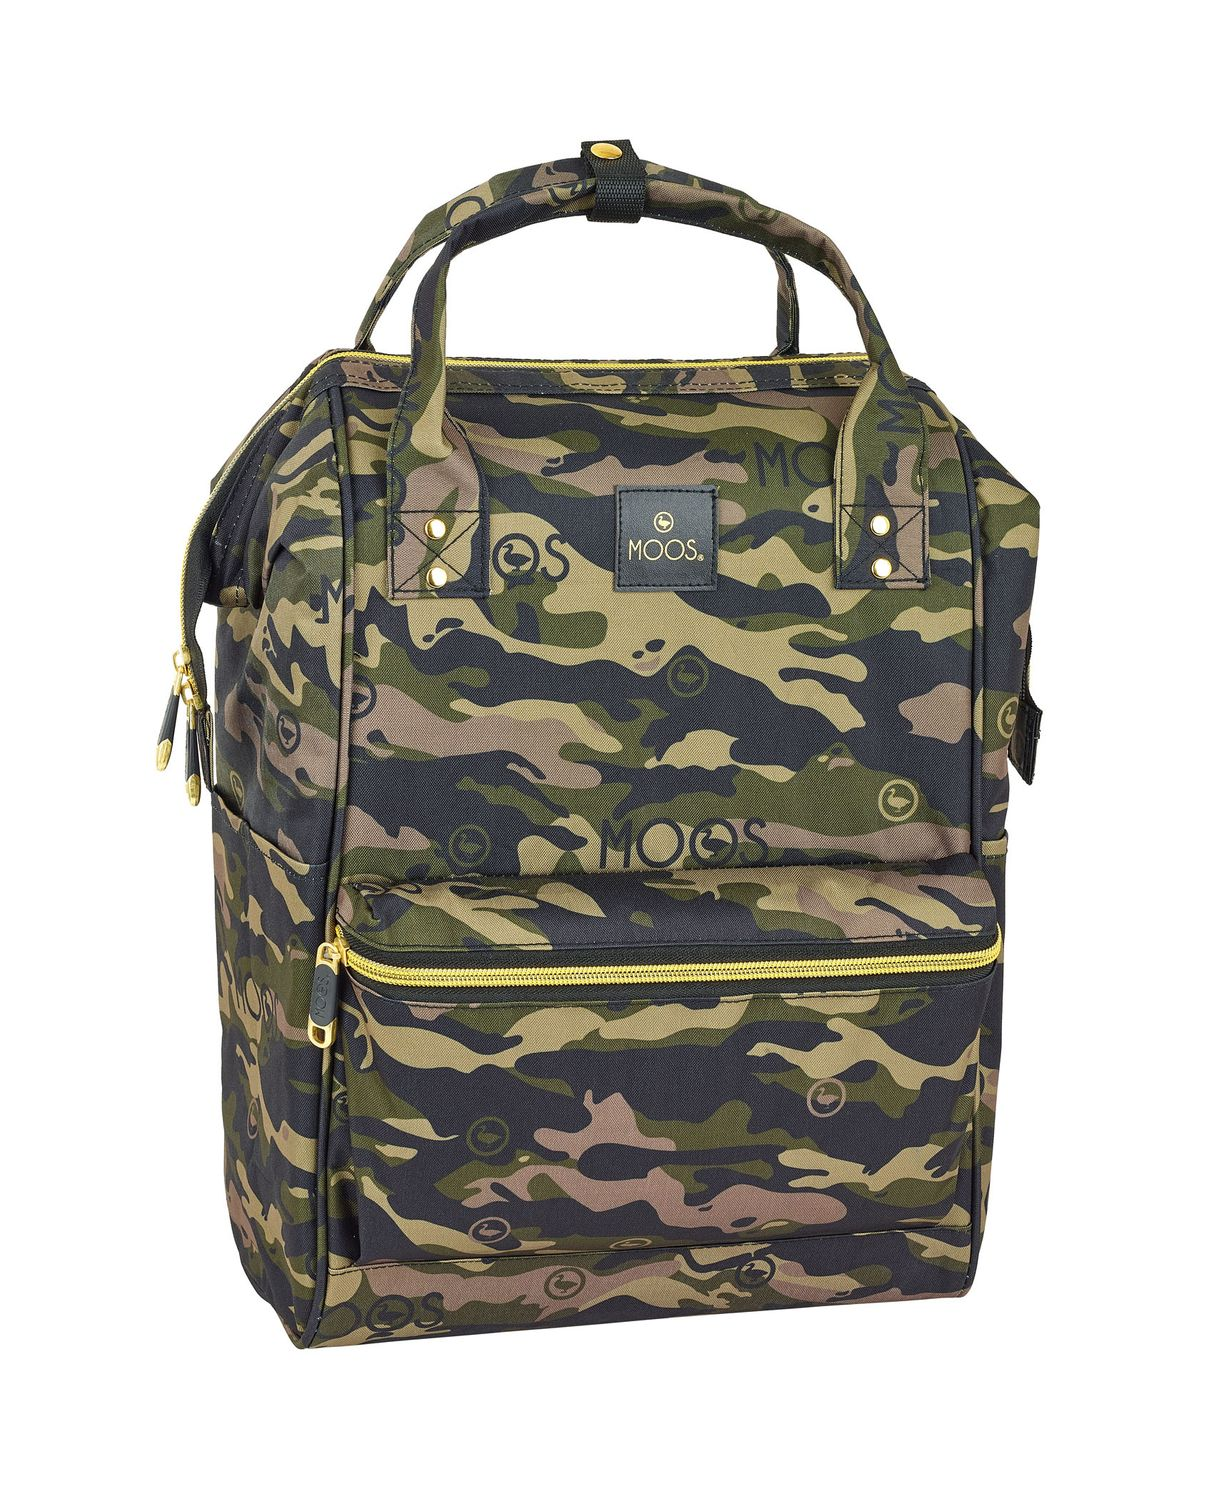 "Backpack with handles for laptop 13"" 40 cm MOSS Camouflage – image 1"